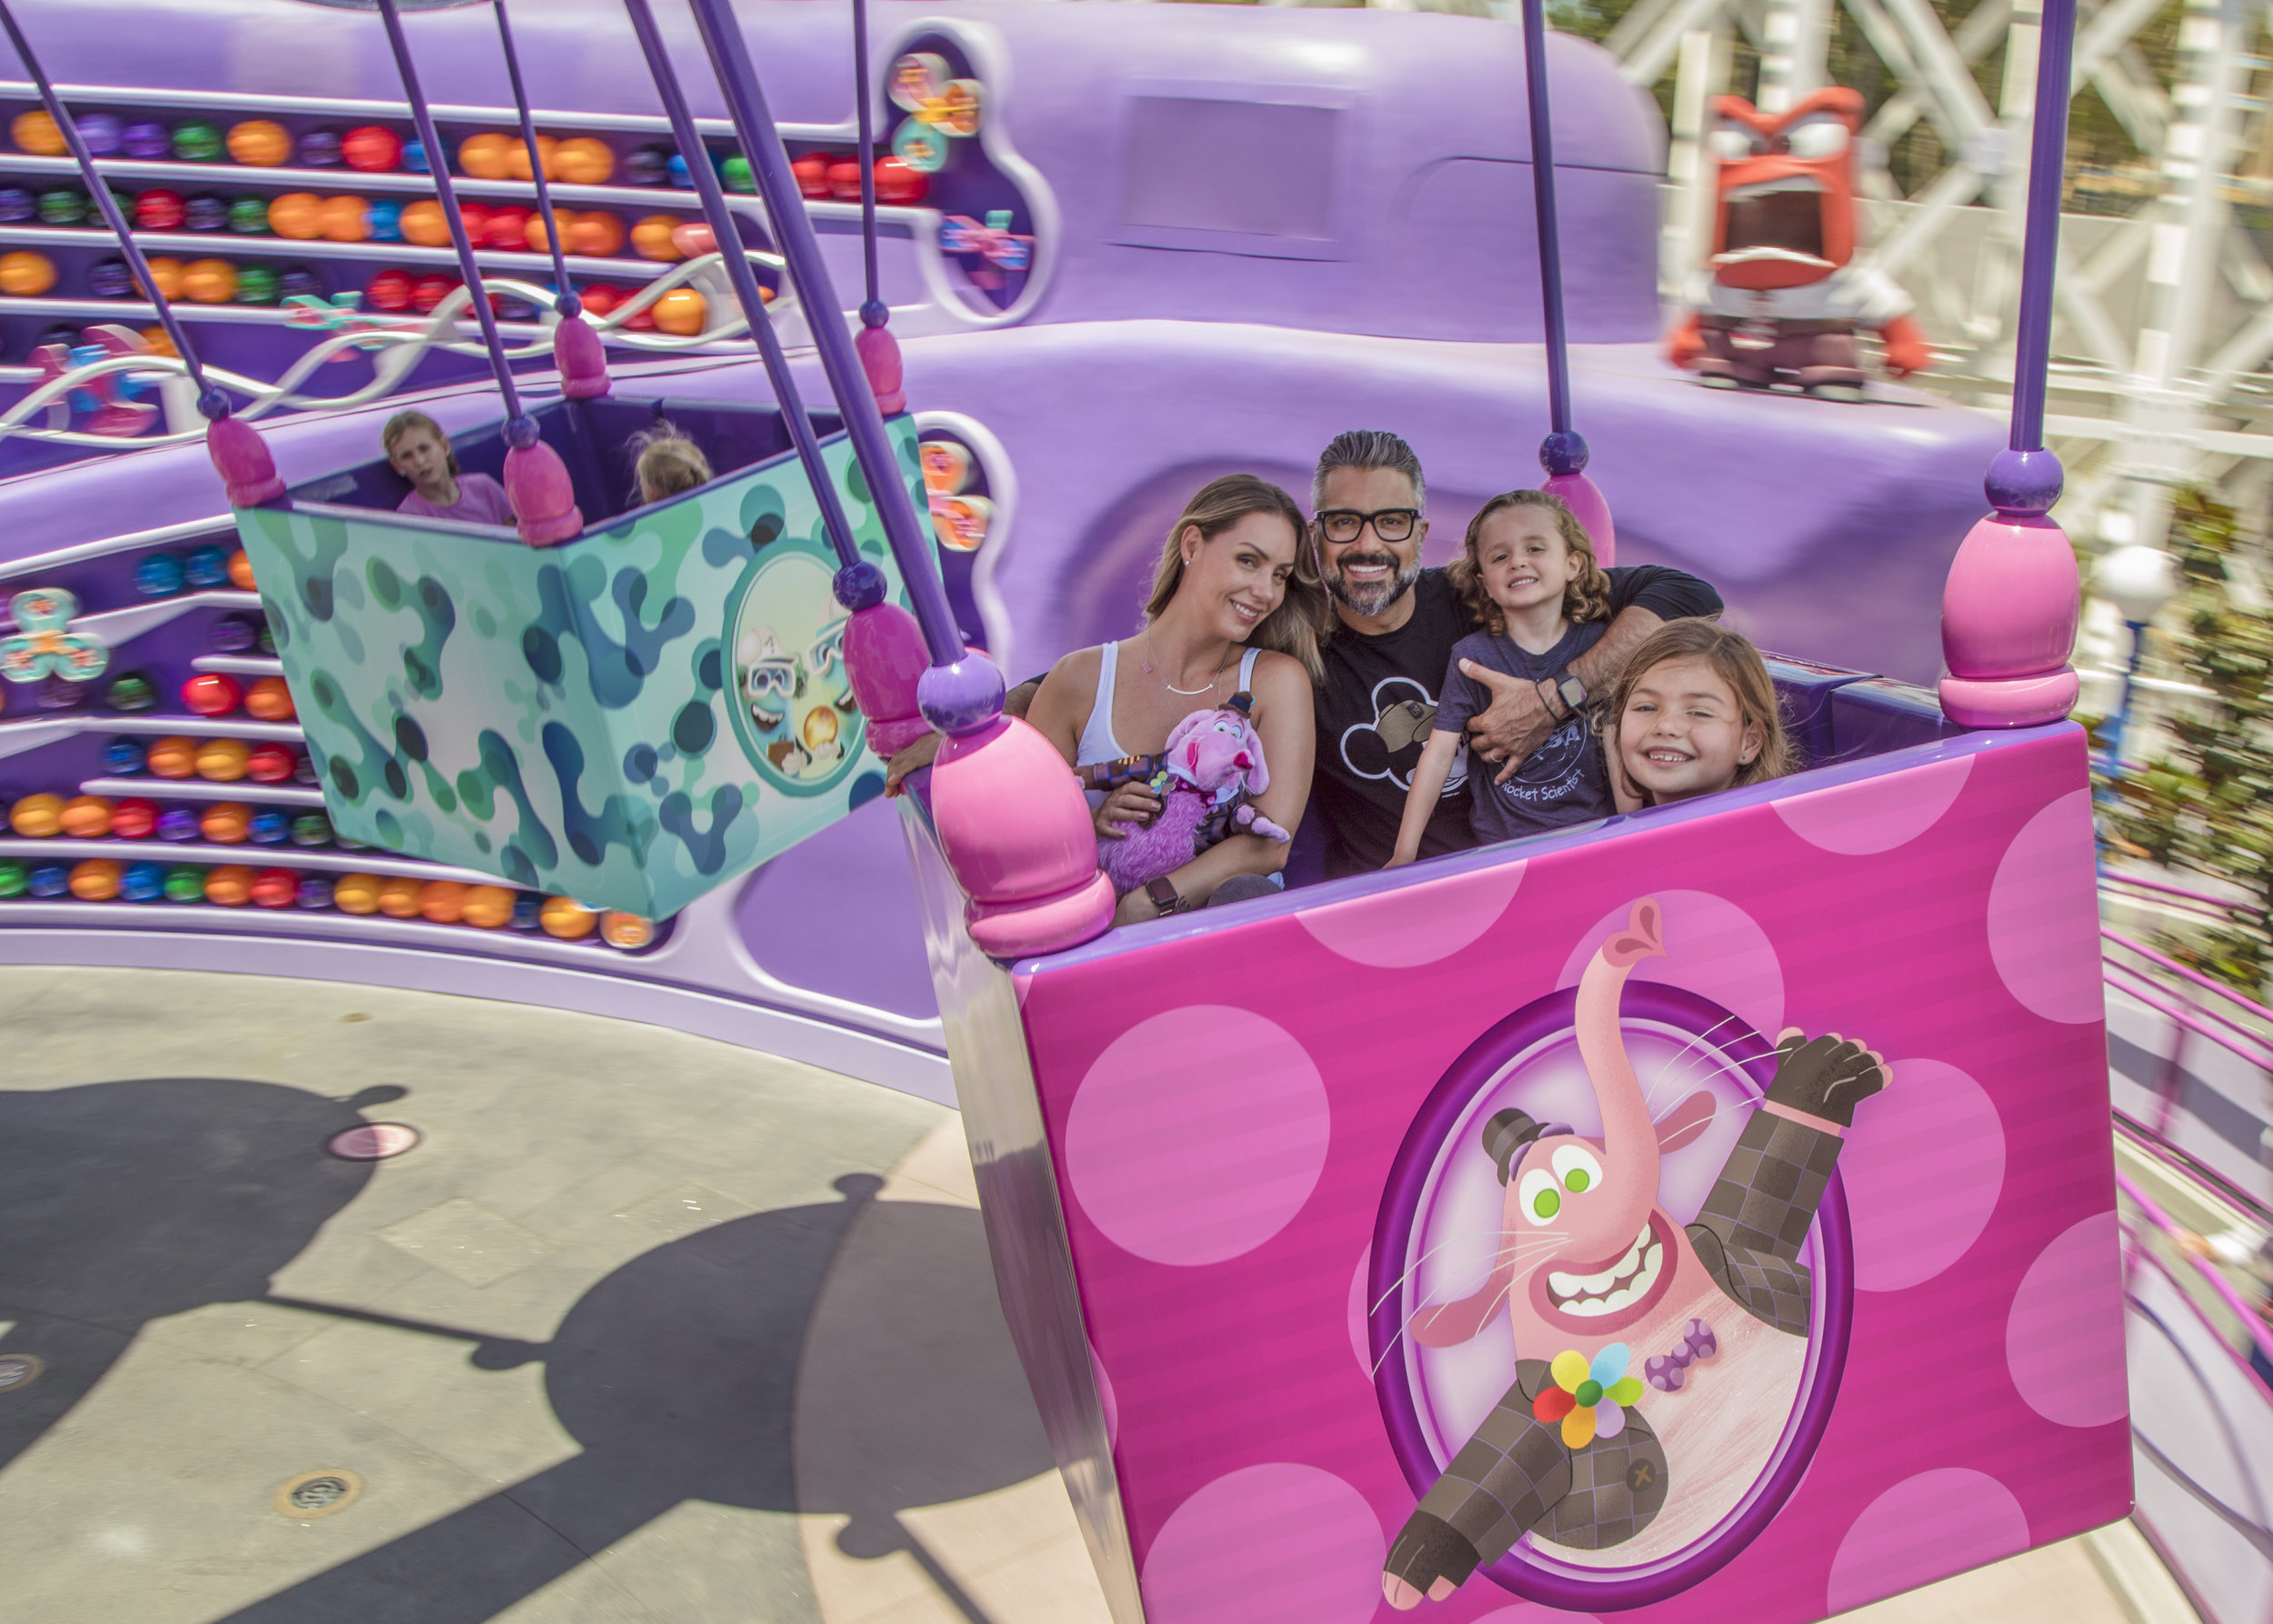 Actor Jaime Camil enjoys a spin on Inside Out Emotional Whirlwind, Pixar Pier's newest attraction, with his wife and children at Disney California Adventure Park - Disneyland Resort - 7/15/19. (Joshua Sudock/Disneyland Resort)